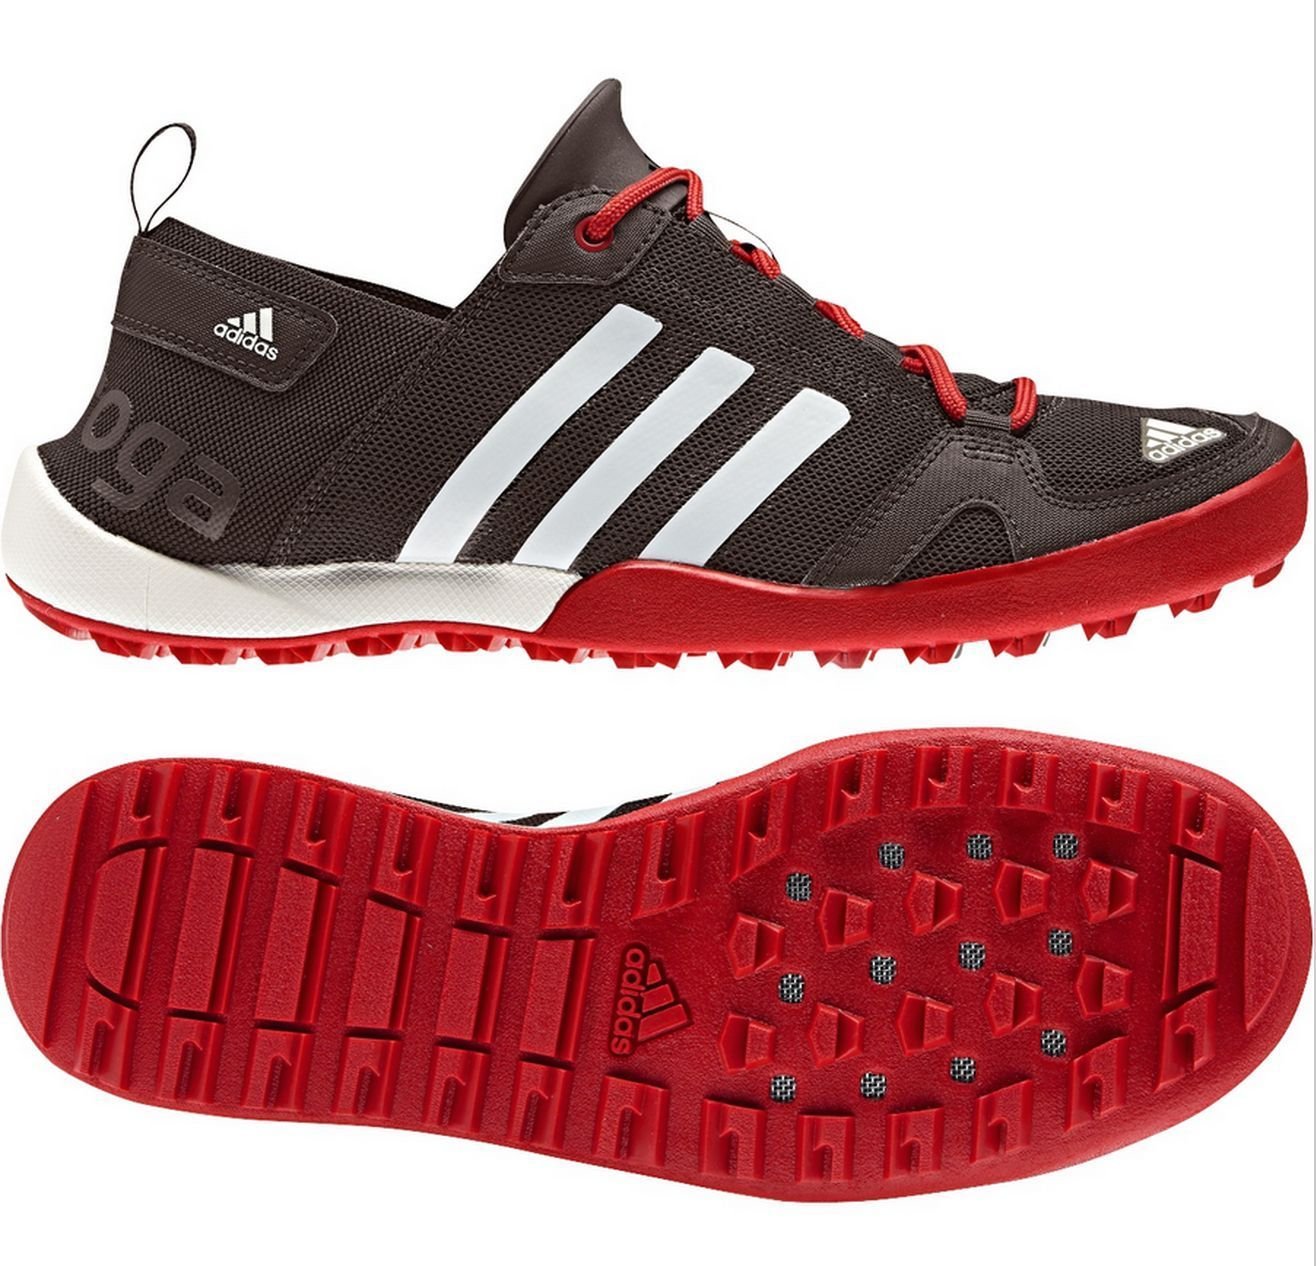 bala Atlas Premedicación  Adidas OUTDOOR CLIMACOOL DAROGA TWO | Sport shoes fashion, Adidas daroga,  Hiking shoes mens